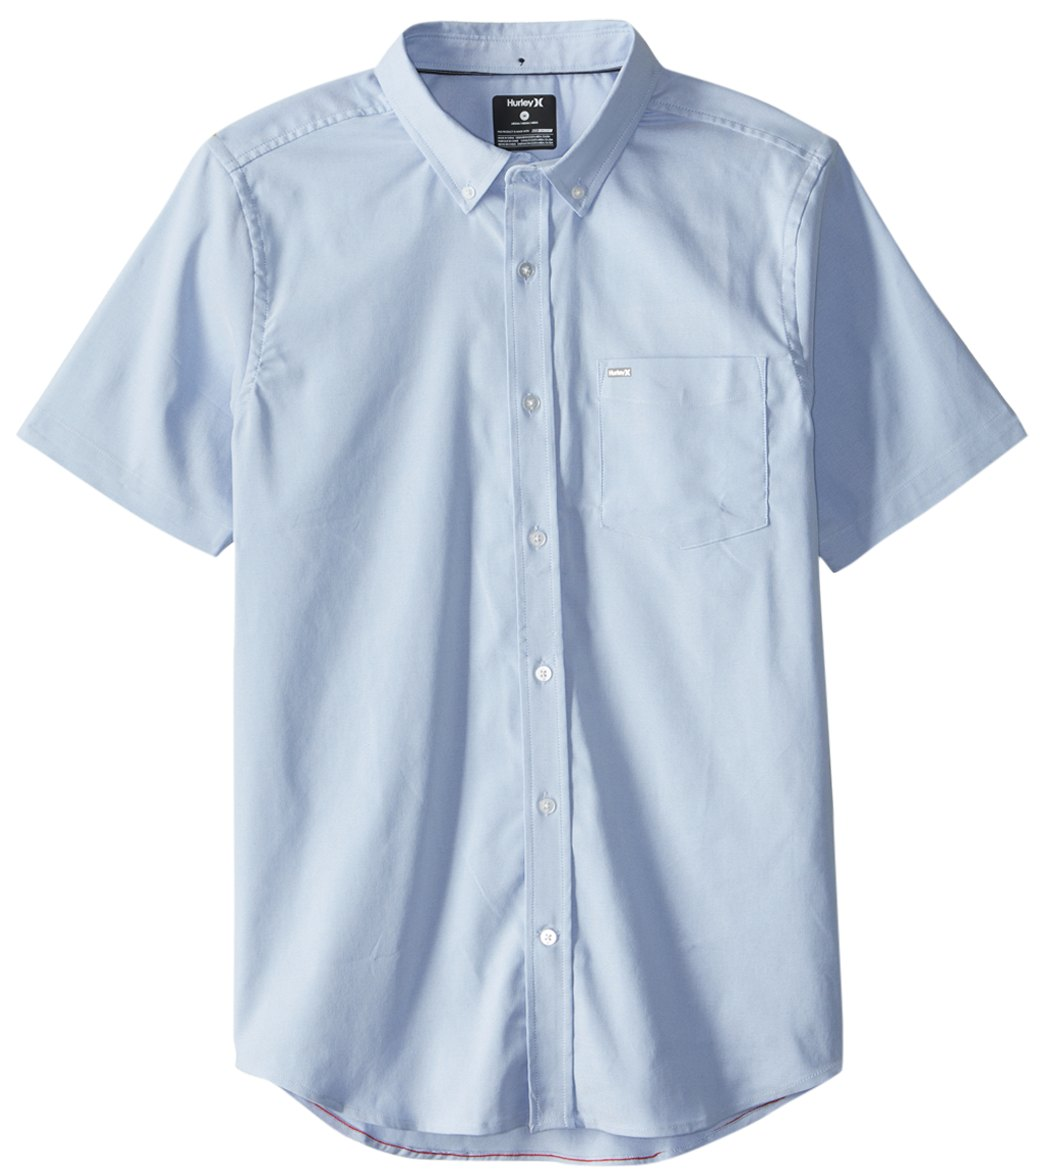 ed4b02d94f Hurley Men's Dri-Fit One & Only Short Sleeve Woven Shirt